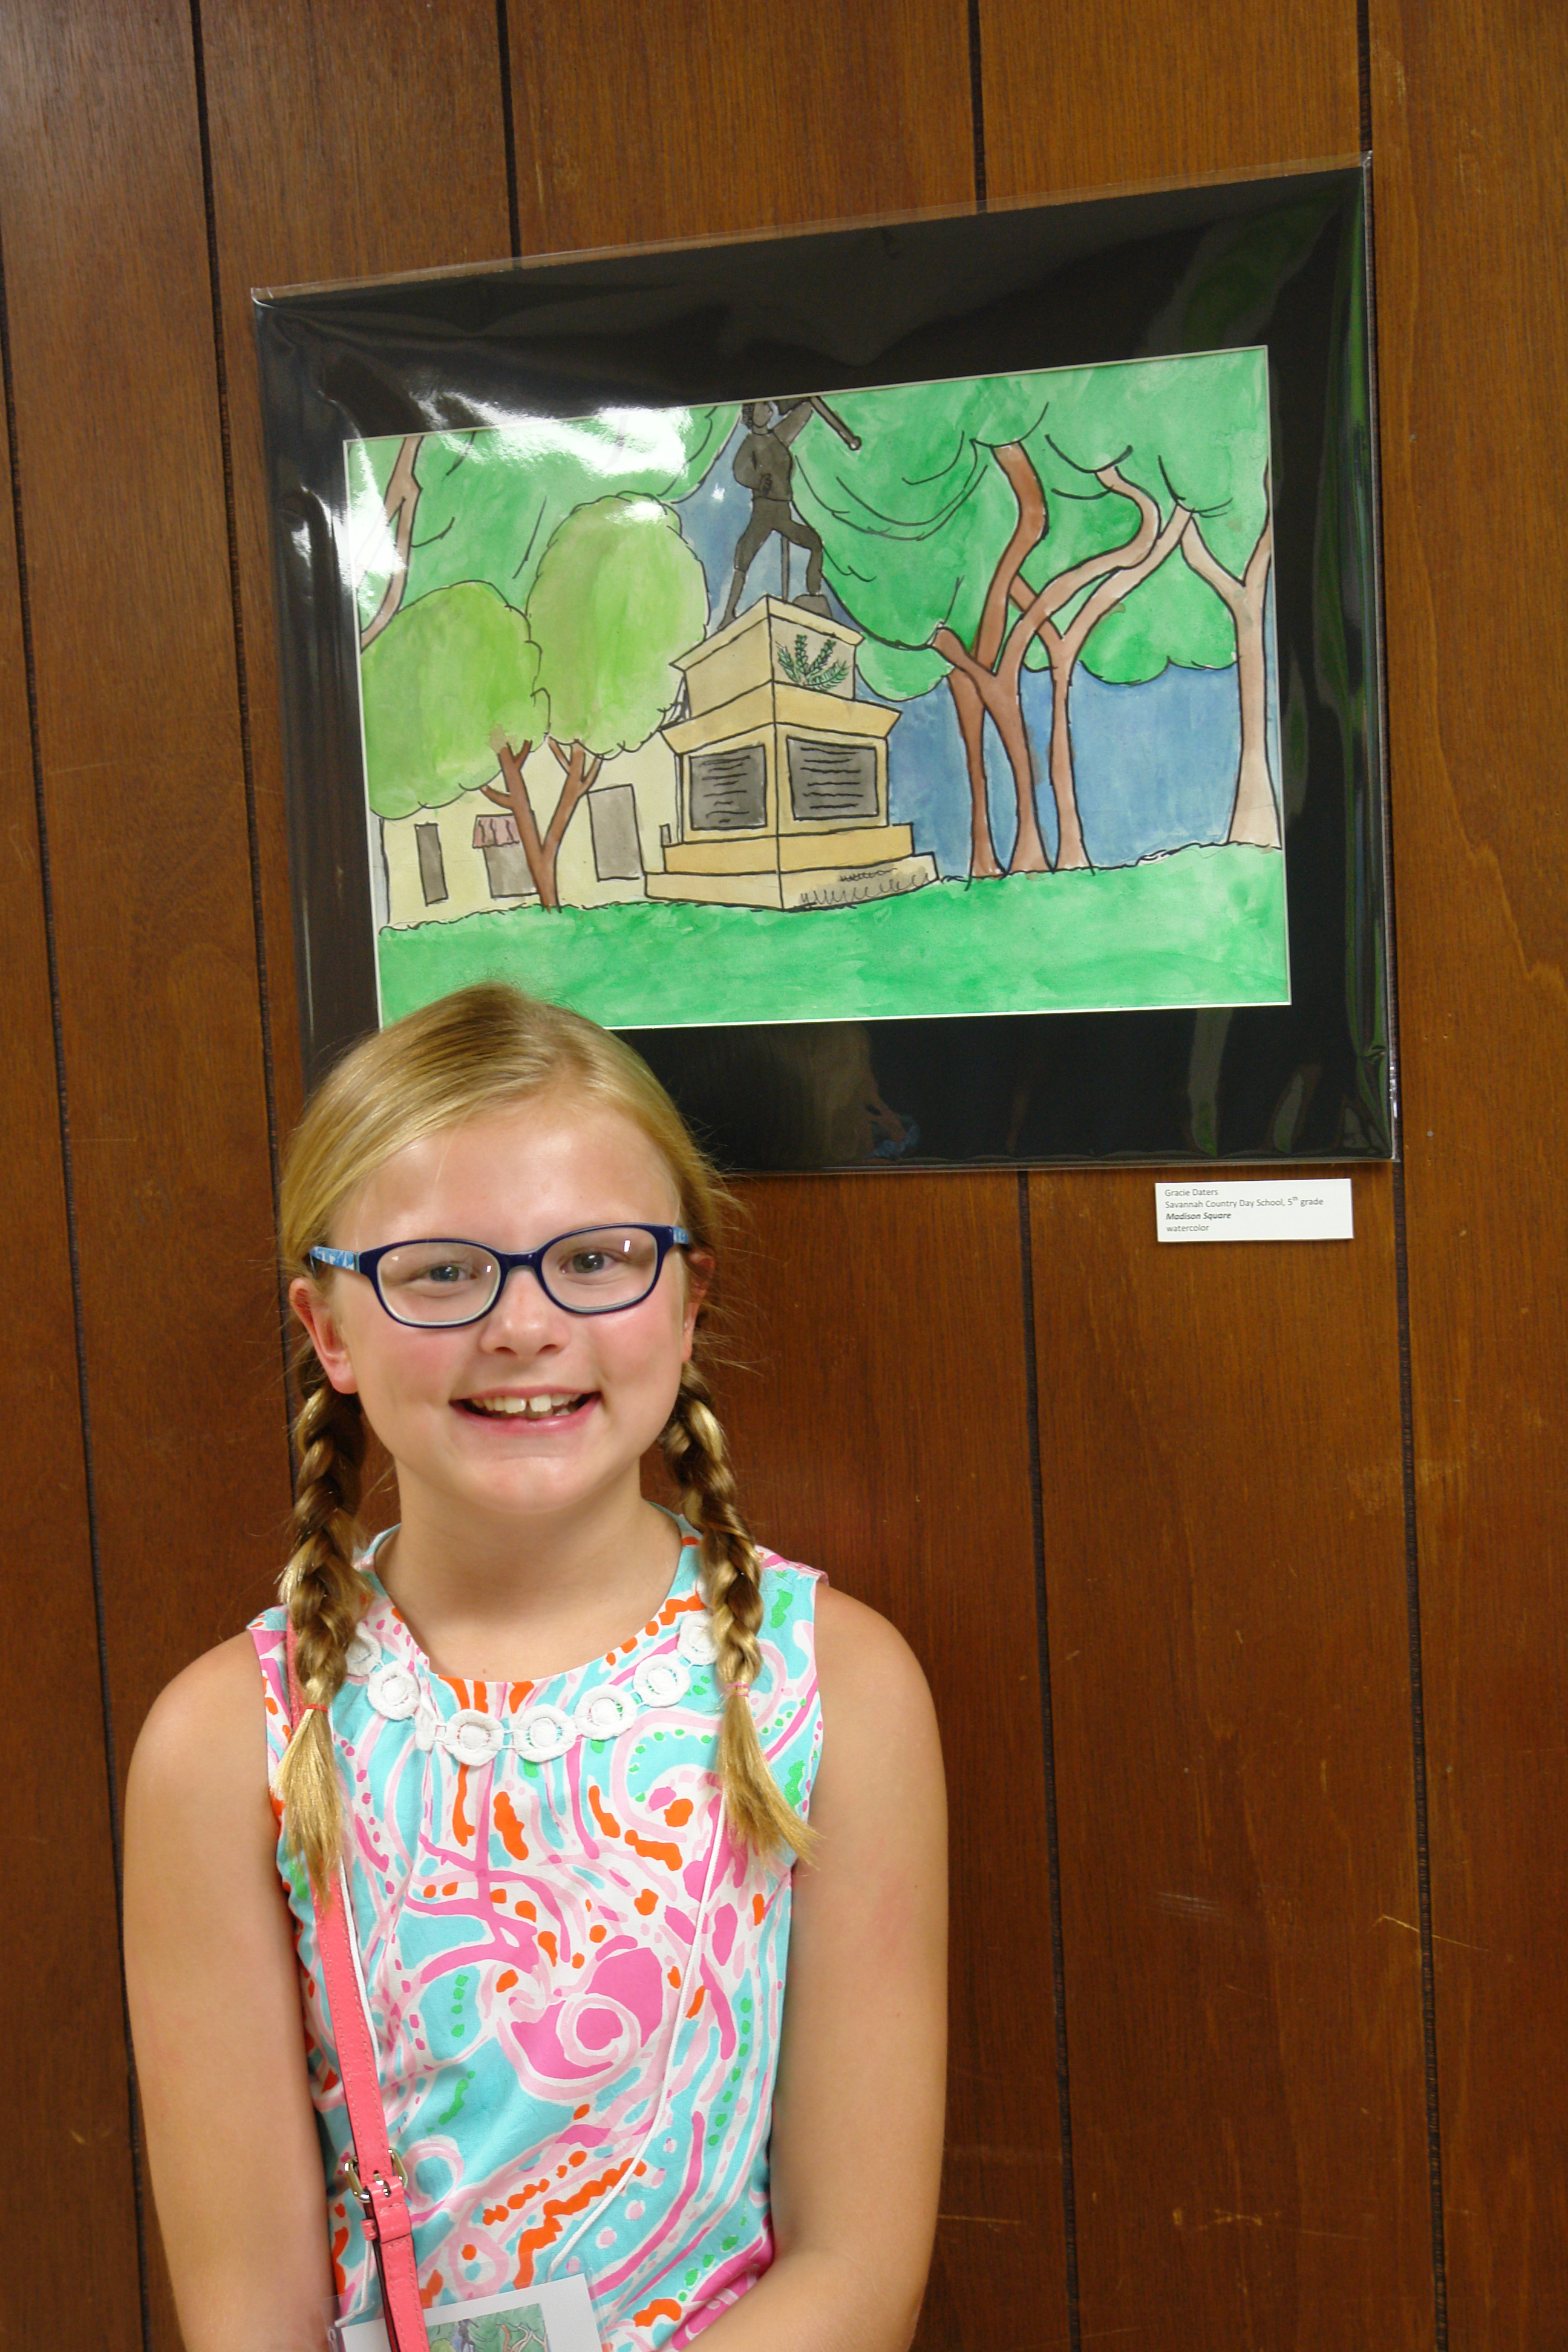 Student Artists with Work